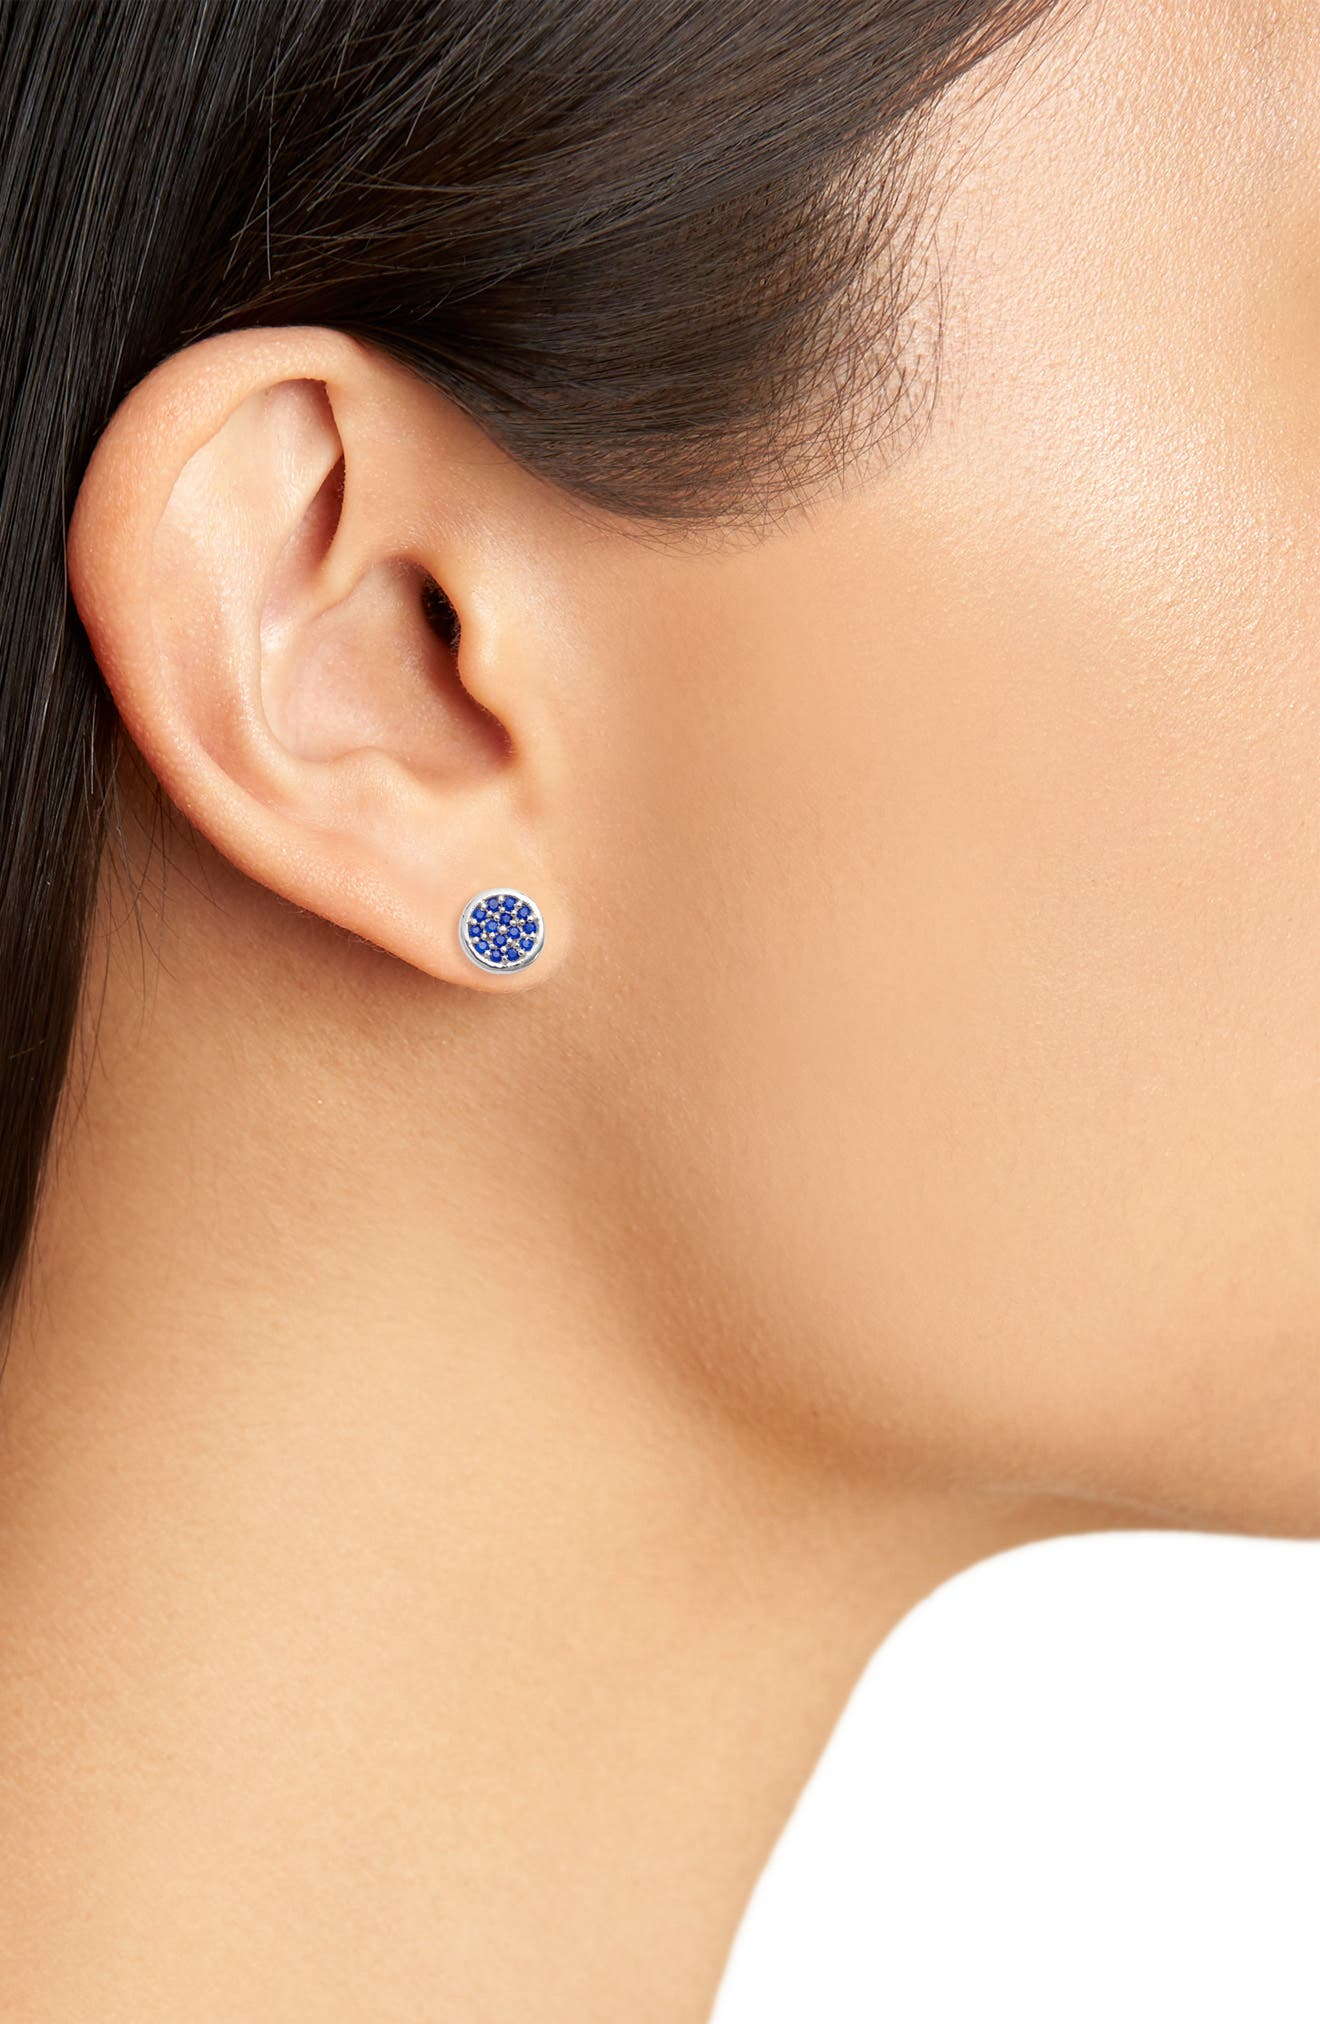 Cubic Zirconia Stud Earrings,                             Alternate thumbnail 2, color,                             Lapis/ Silver